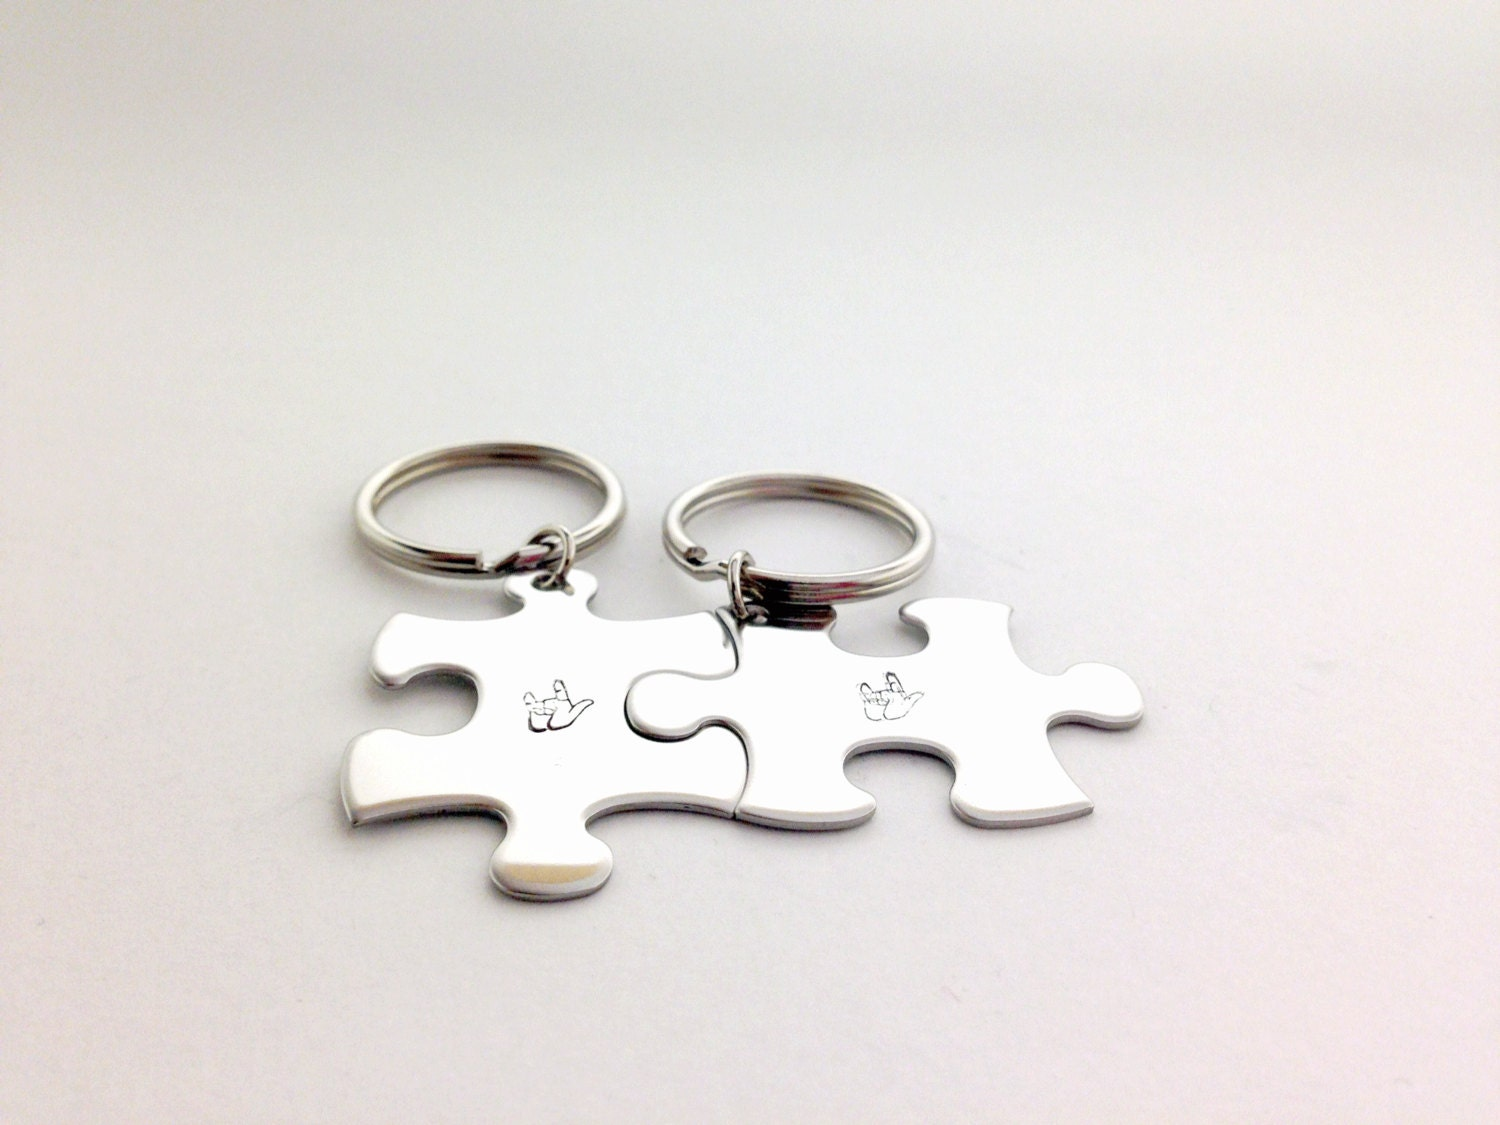 I Love You Keychain Sign Language Finger Spelling Puzzle Piece